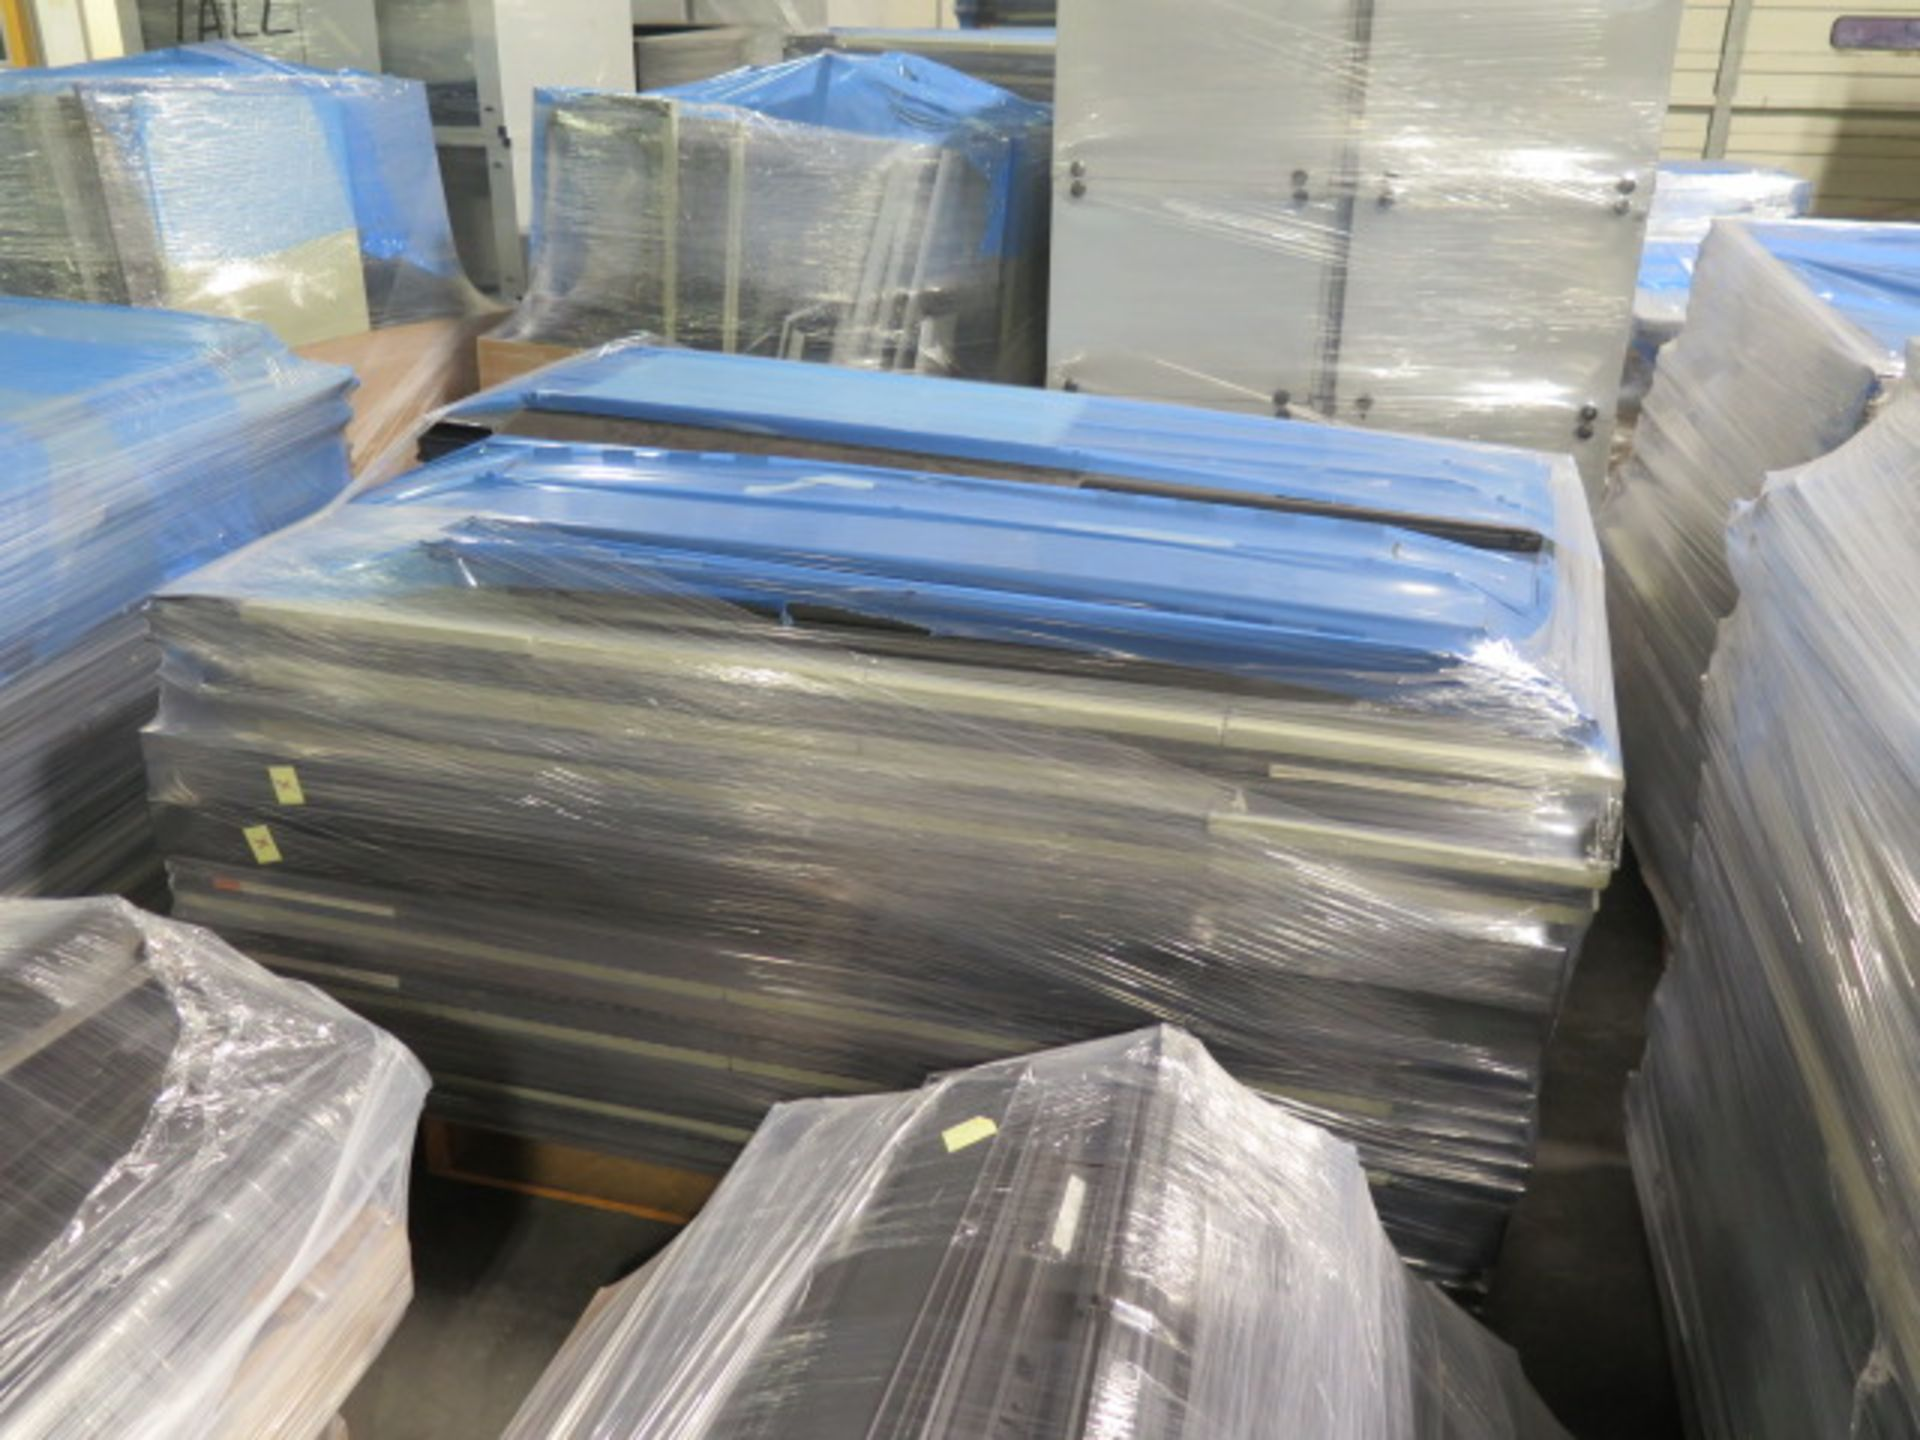 Large Quantity of Office Partitions, Desks, File Cabinets and Storage Cabinets (SOLD AS-IS - NO WARA - Image 18 of 24